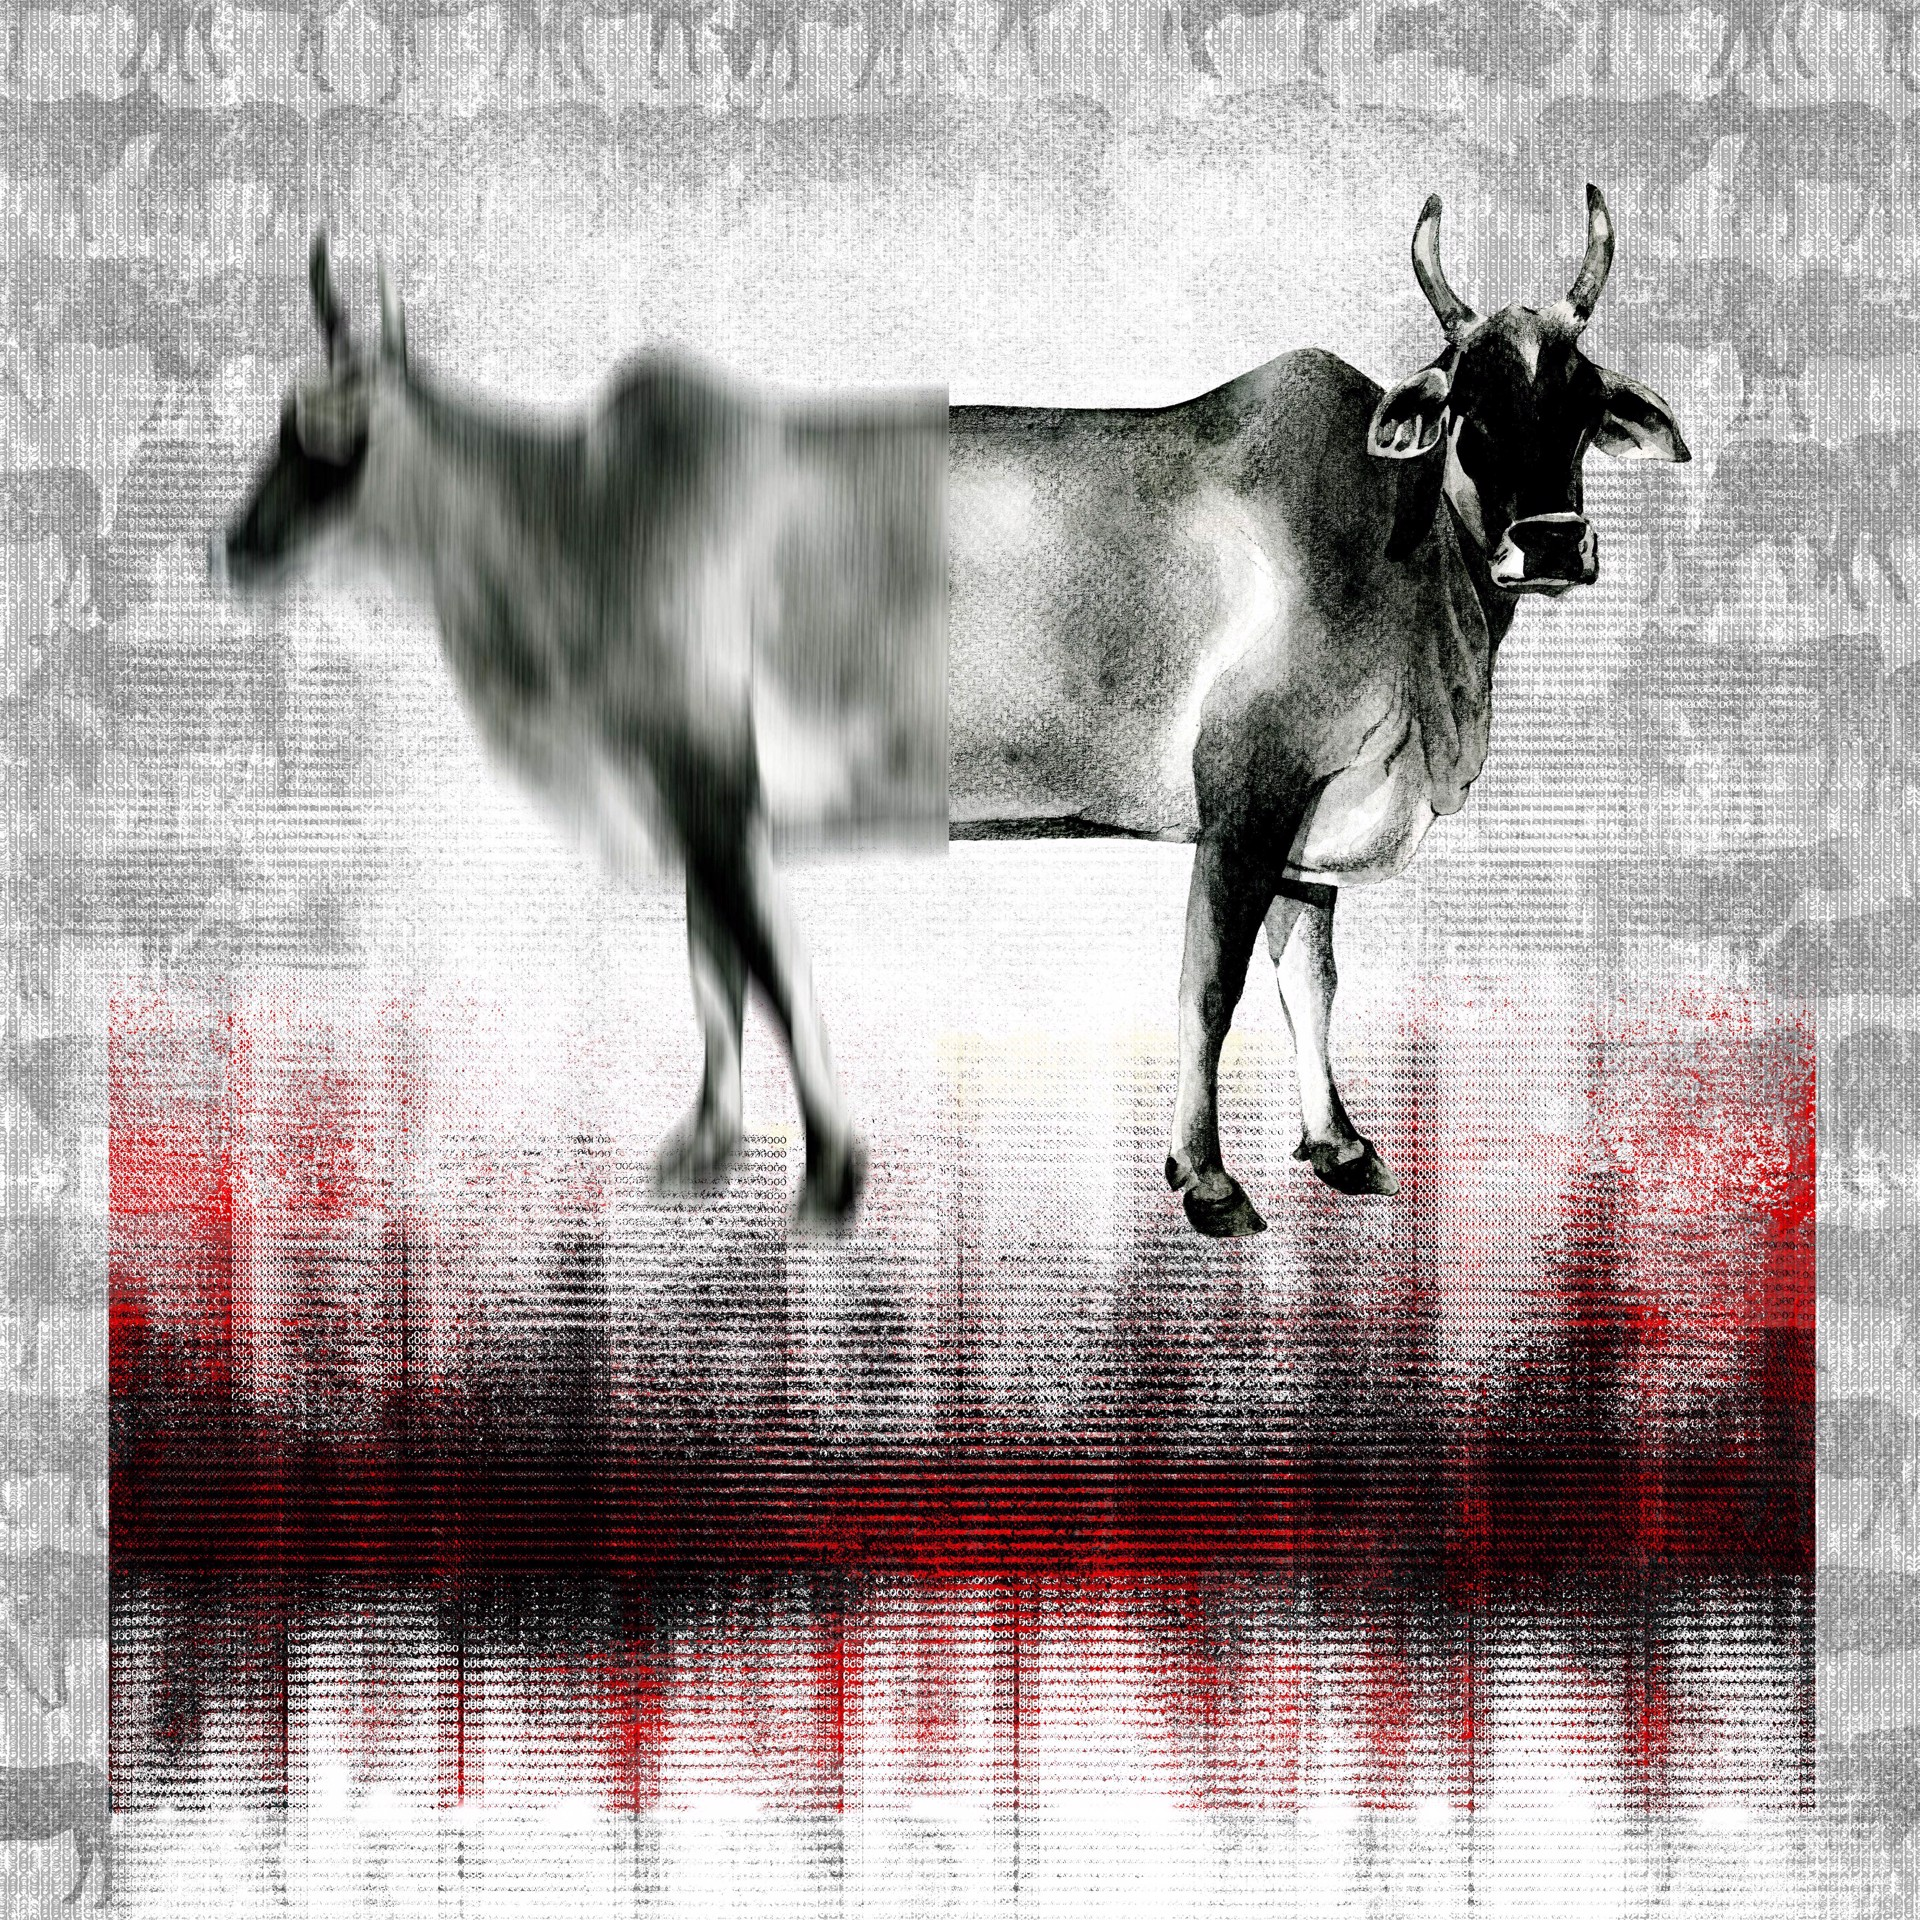 The Holy Cow by Binay Sinha